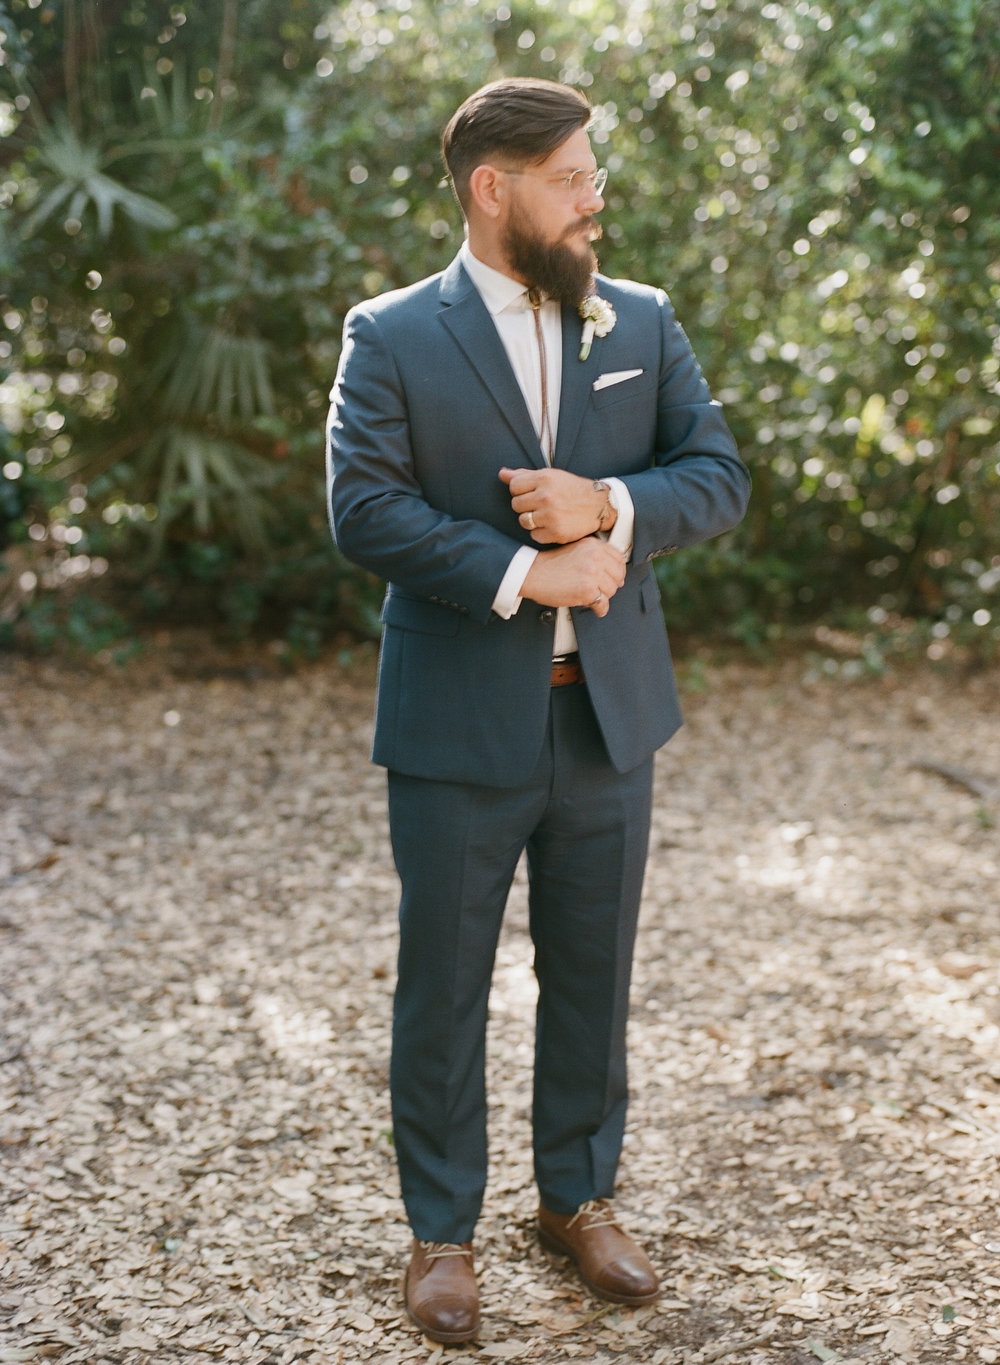 23-groom-modern-suit.jpg